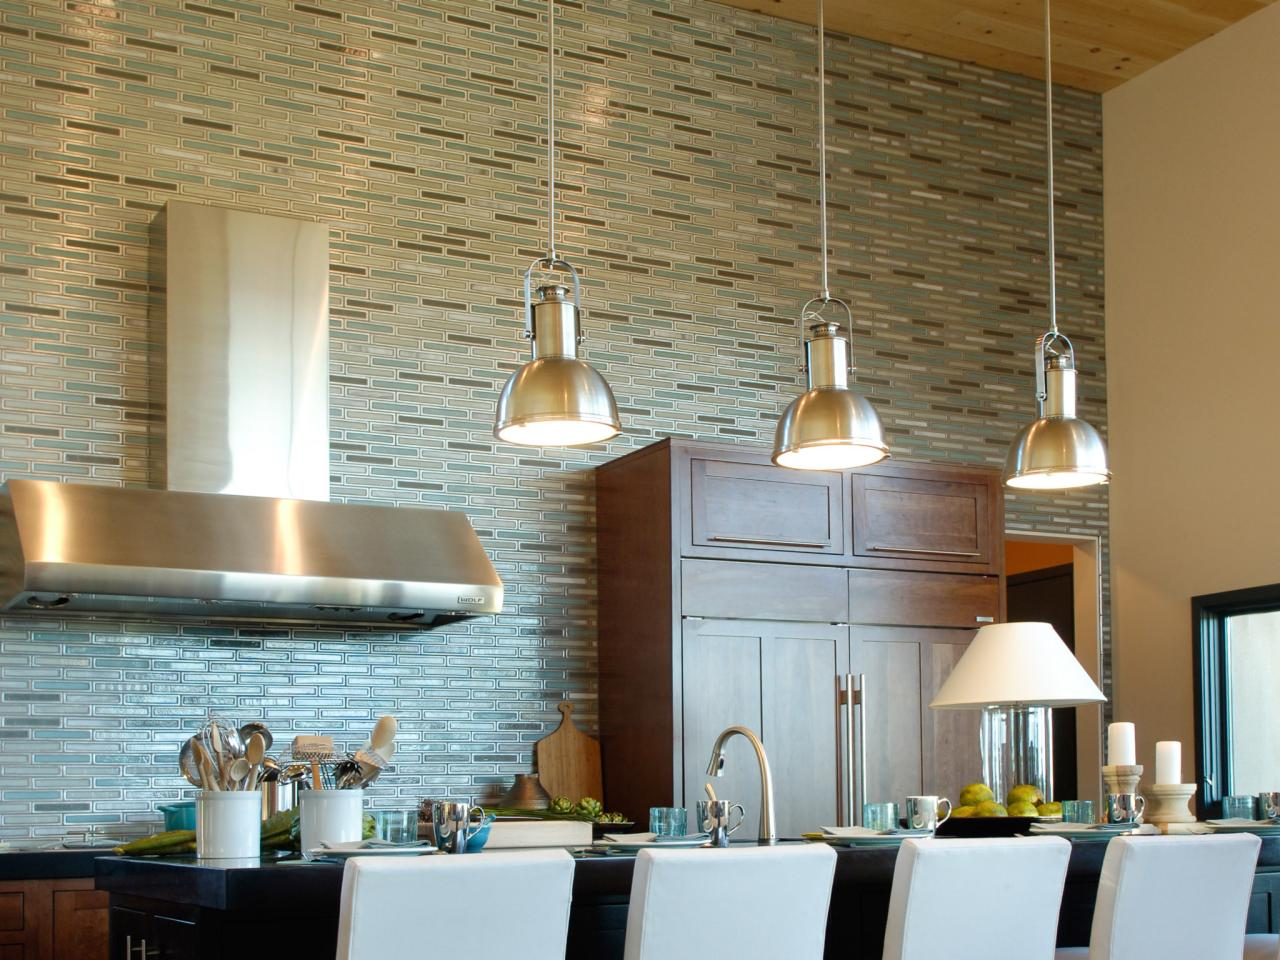 Tile backsplash ideas pictures tips from hgtv hgtv for Kitchen tiles design photos